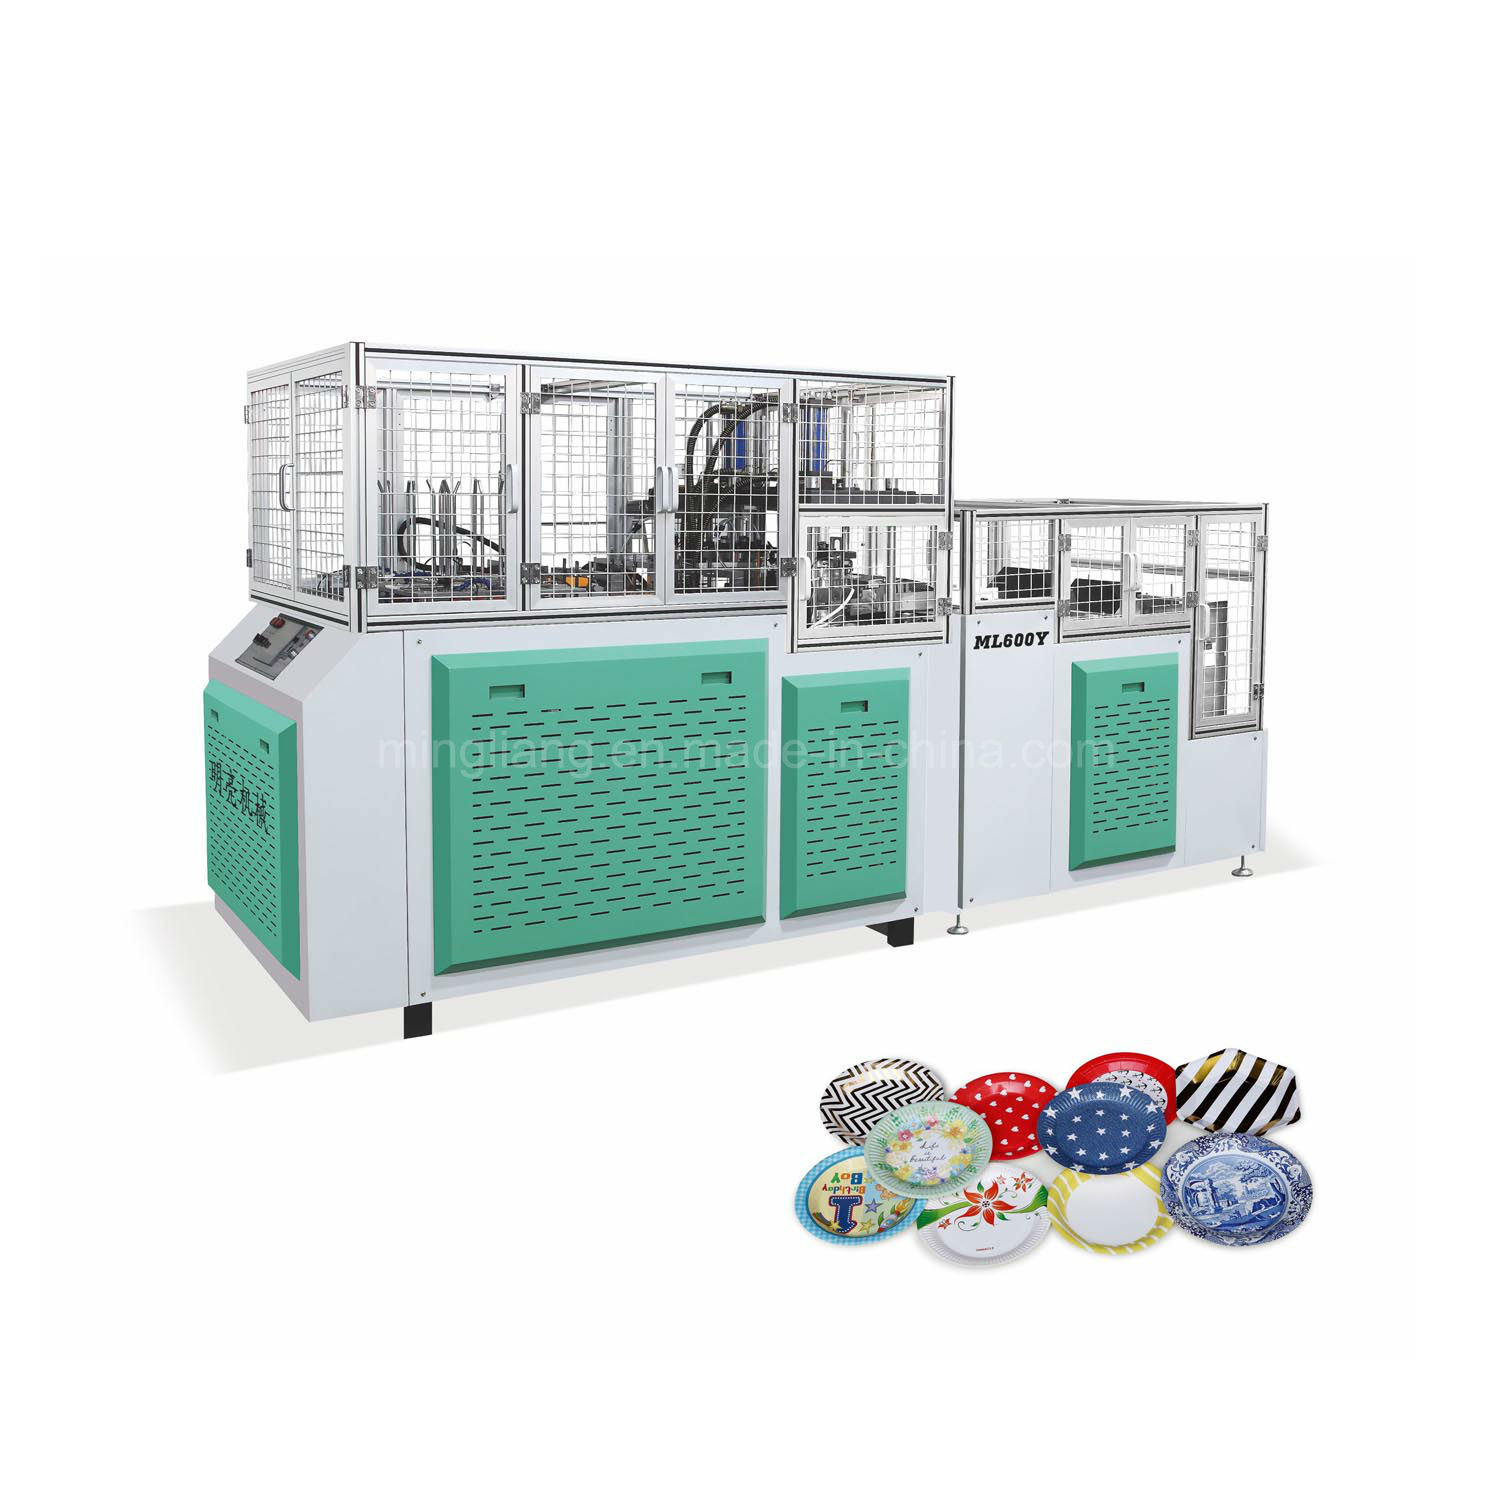 China Paper Plate Machine, Paper Plate Machine Manufacturers, Suppliers,  Price   Made-in-China com